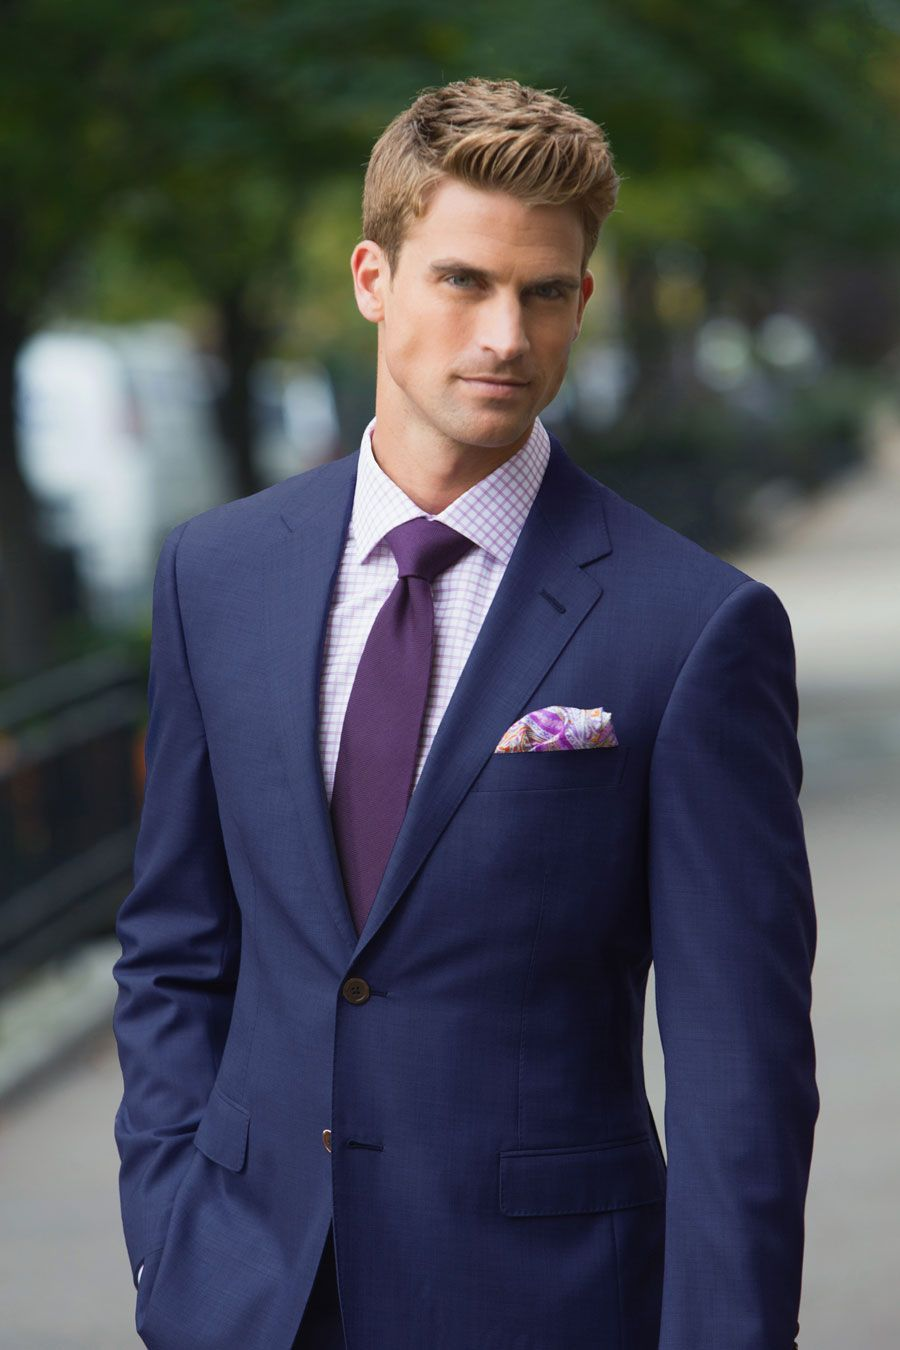 Bright-Blue-Sharkskin-Custom-Suit-Lavender-Check-Tailored-Shirt ...